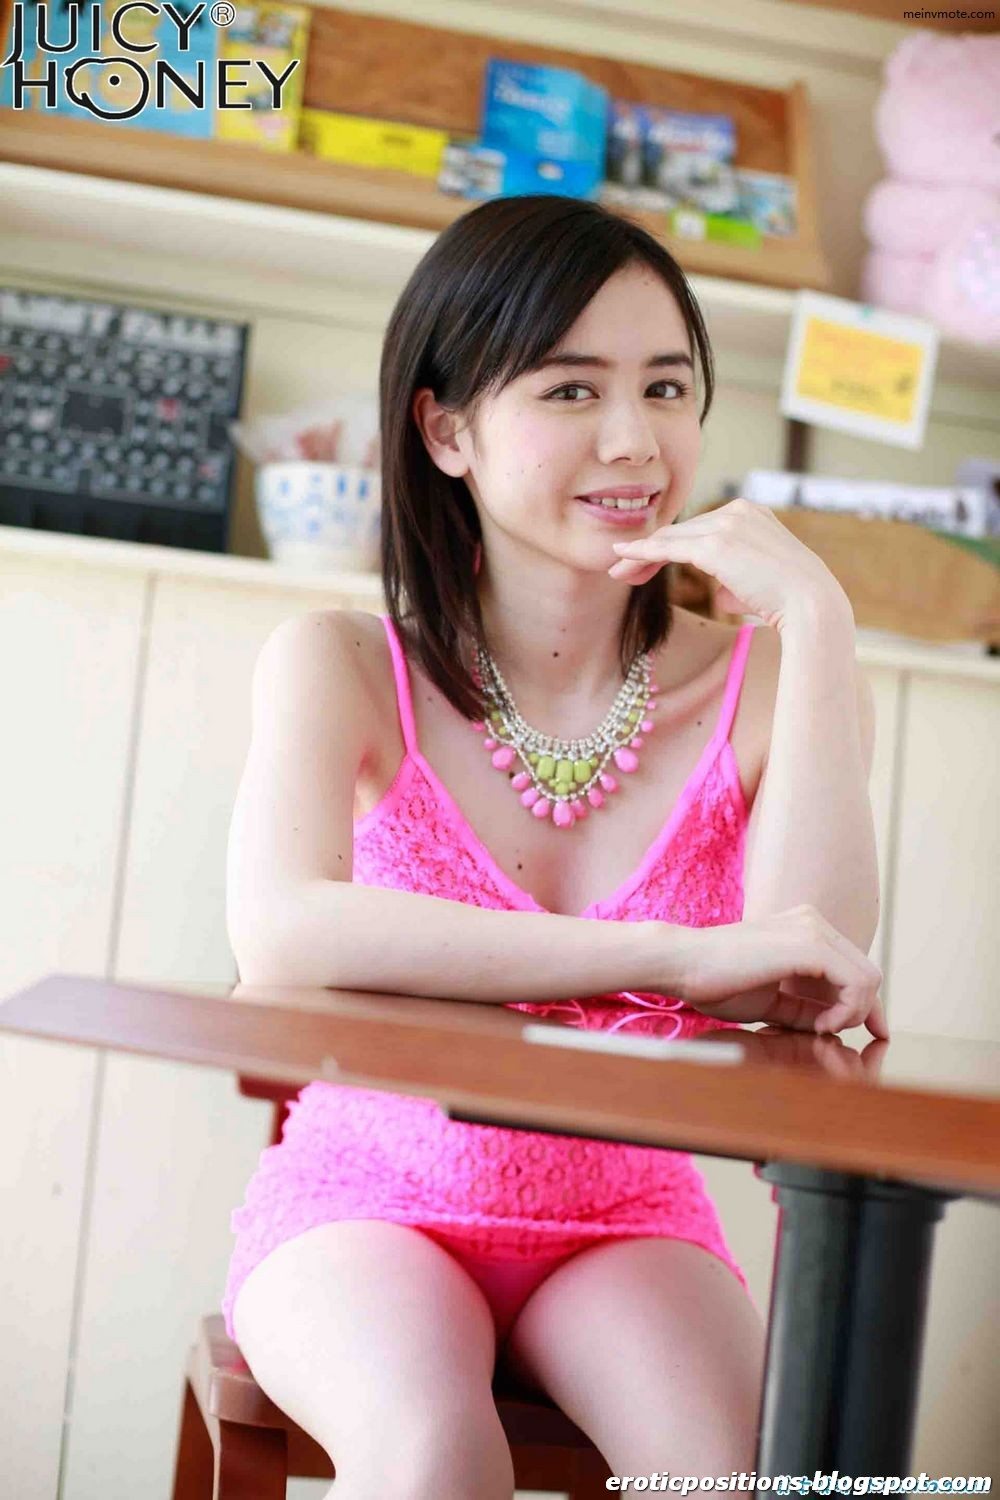 Huang Hou Jichuan white sexy beauty with pink skirt